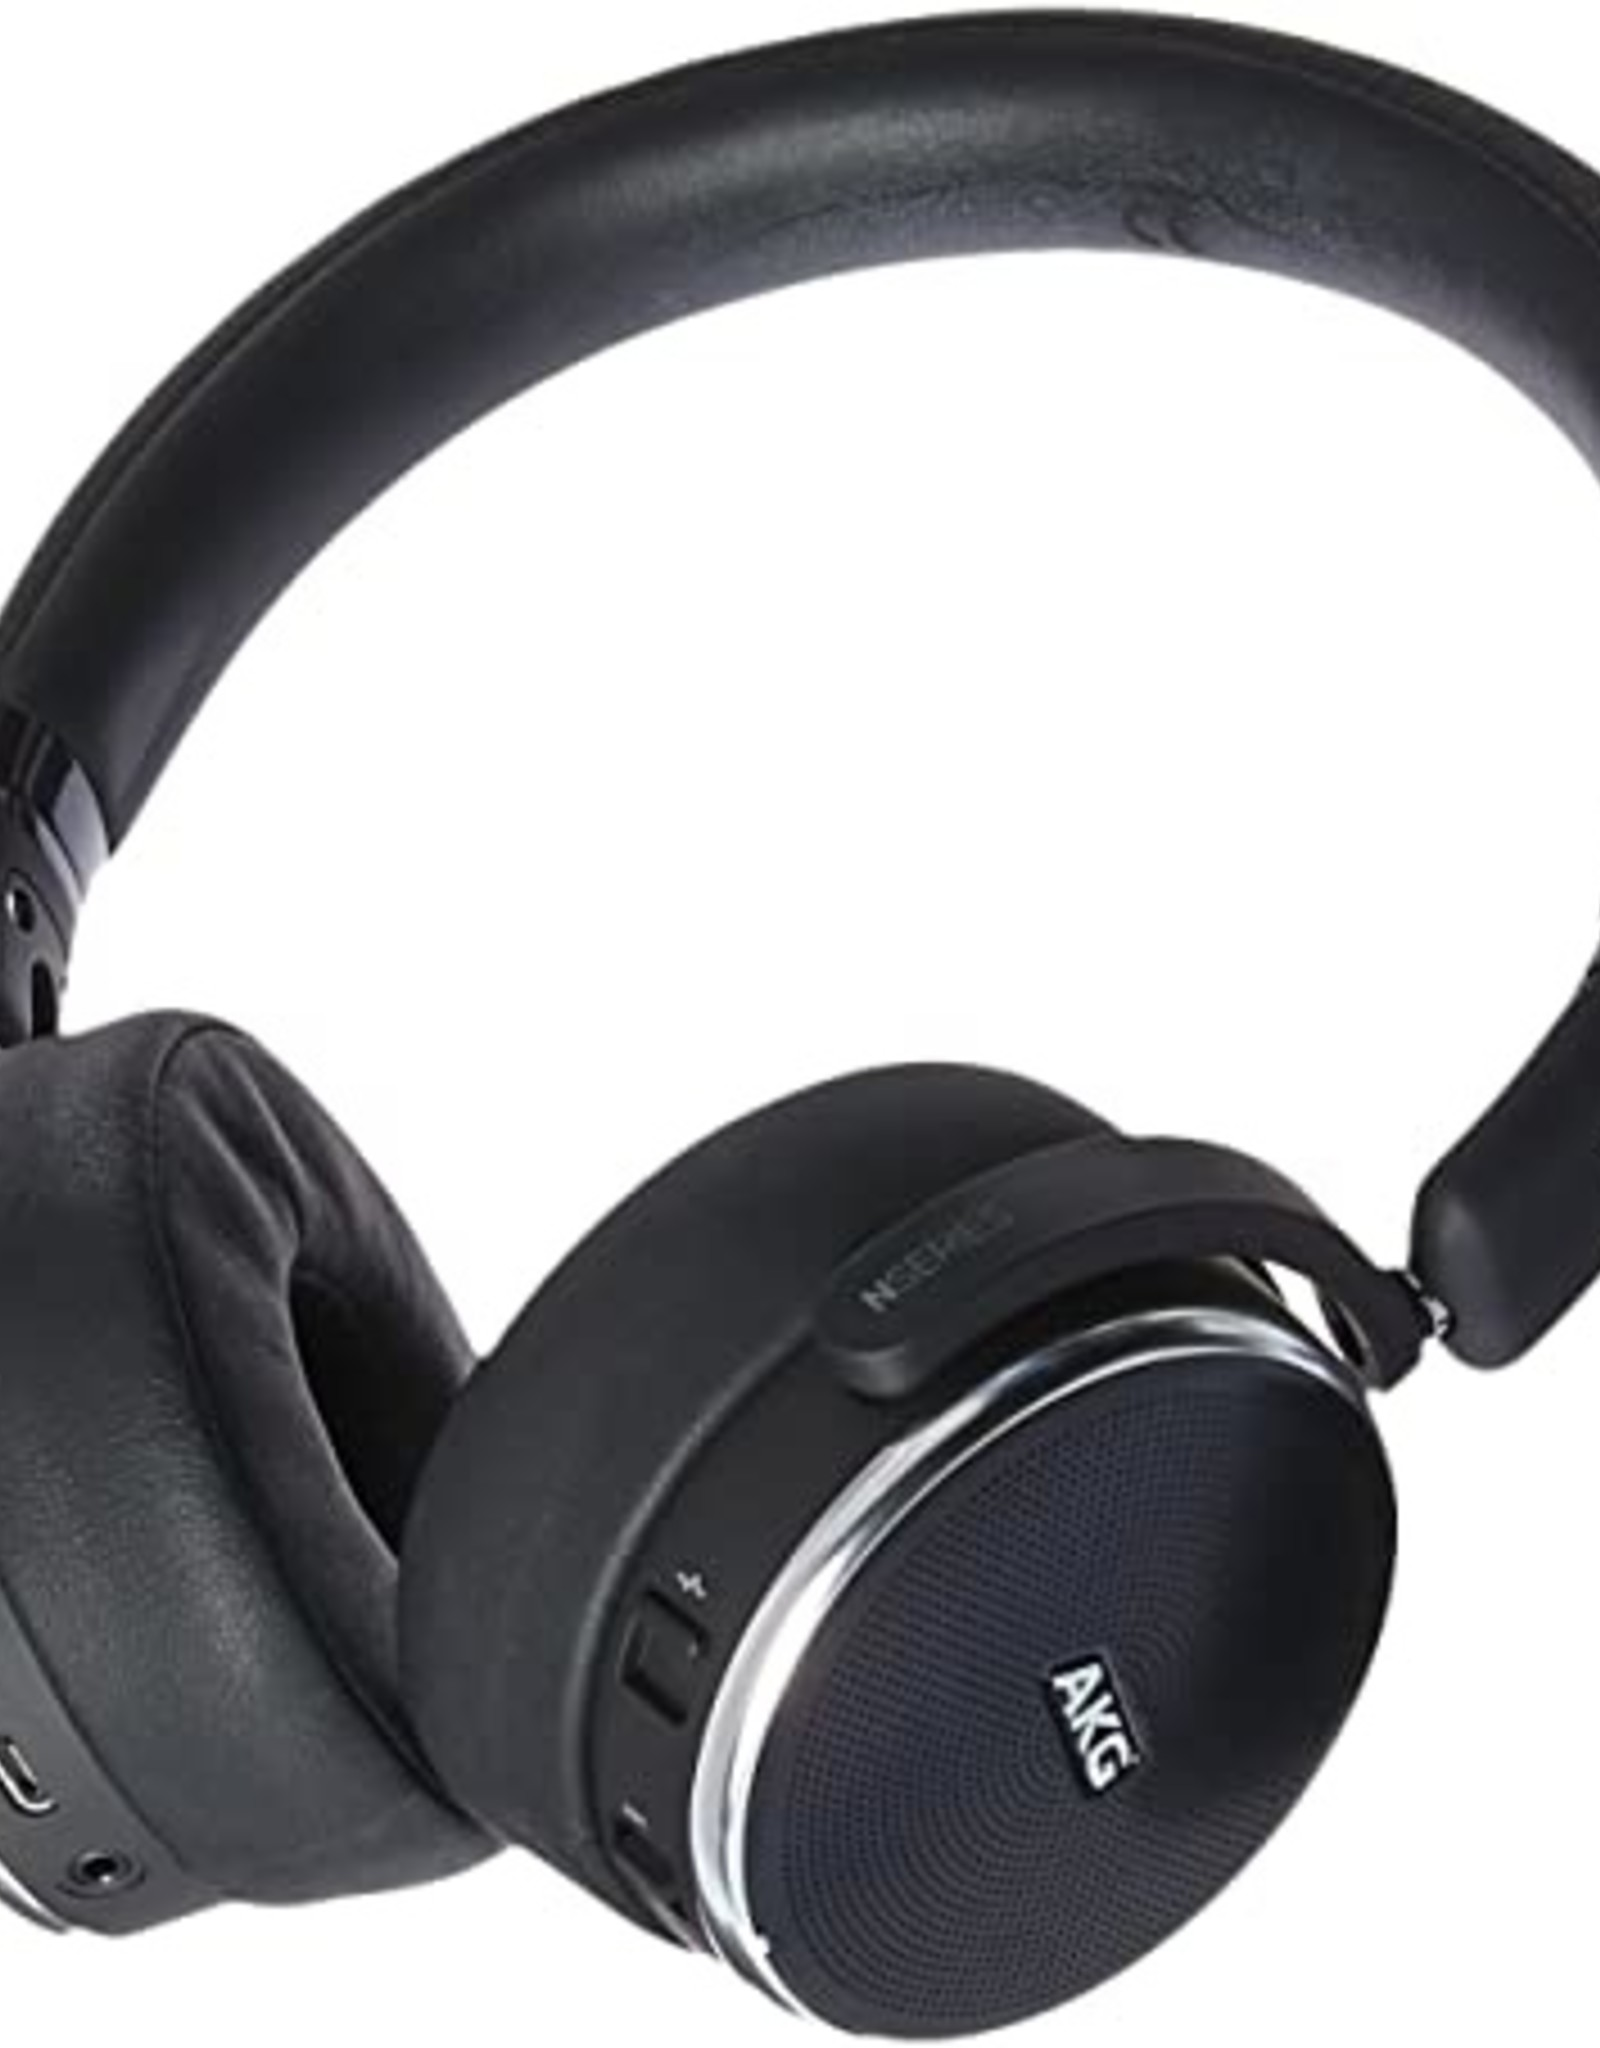 AKG AKG N60 | Headphones with mic - on-ear - Bluetooth - wireless - active noise canceling - 3.5 mm jack - noise isolating Black